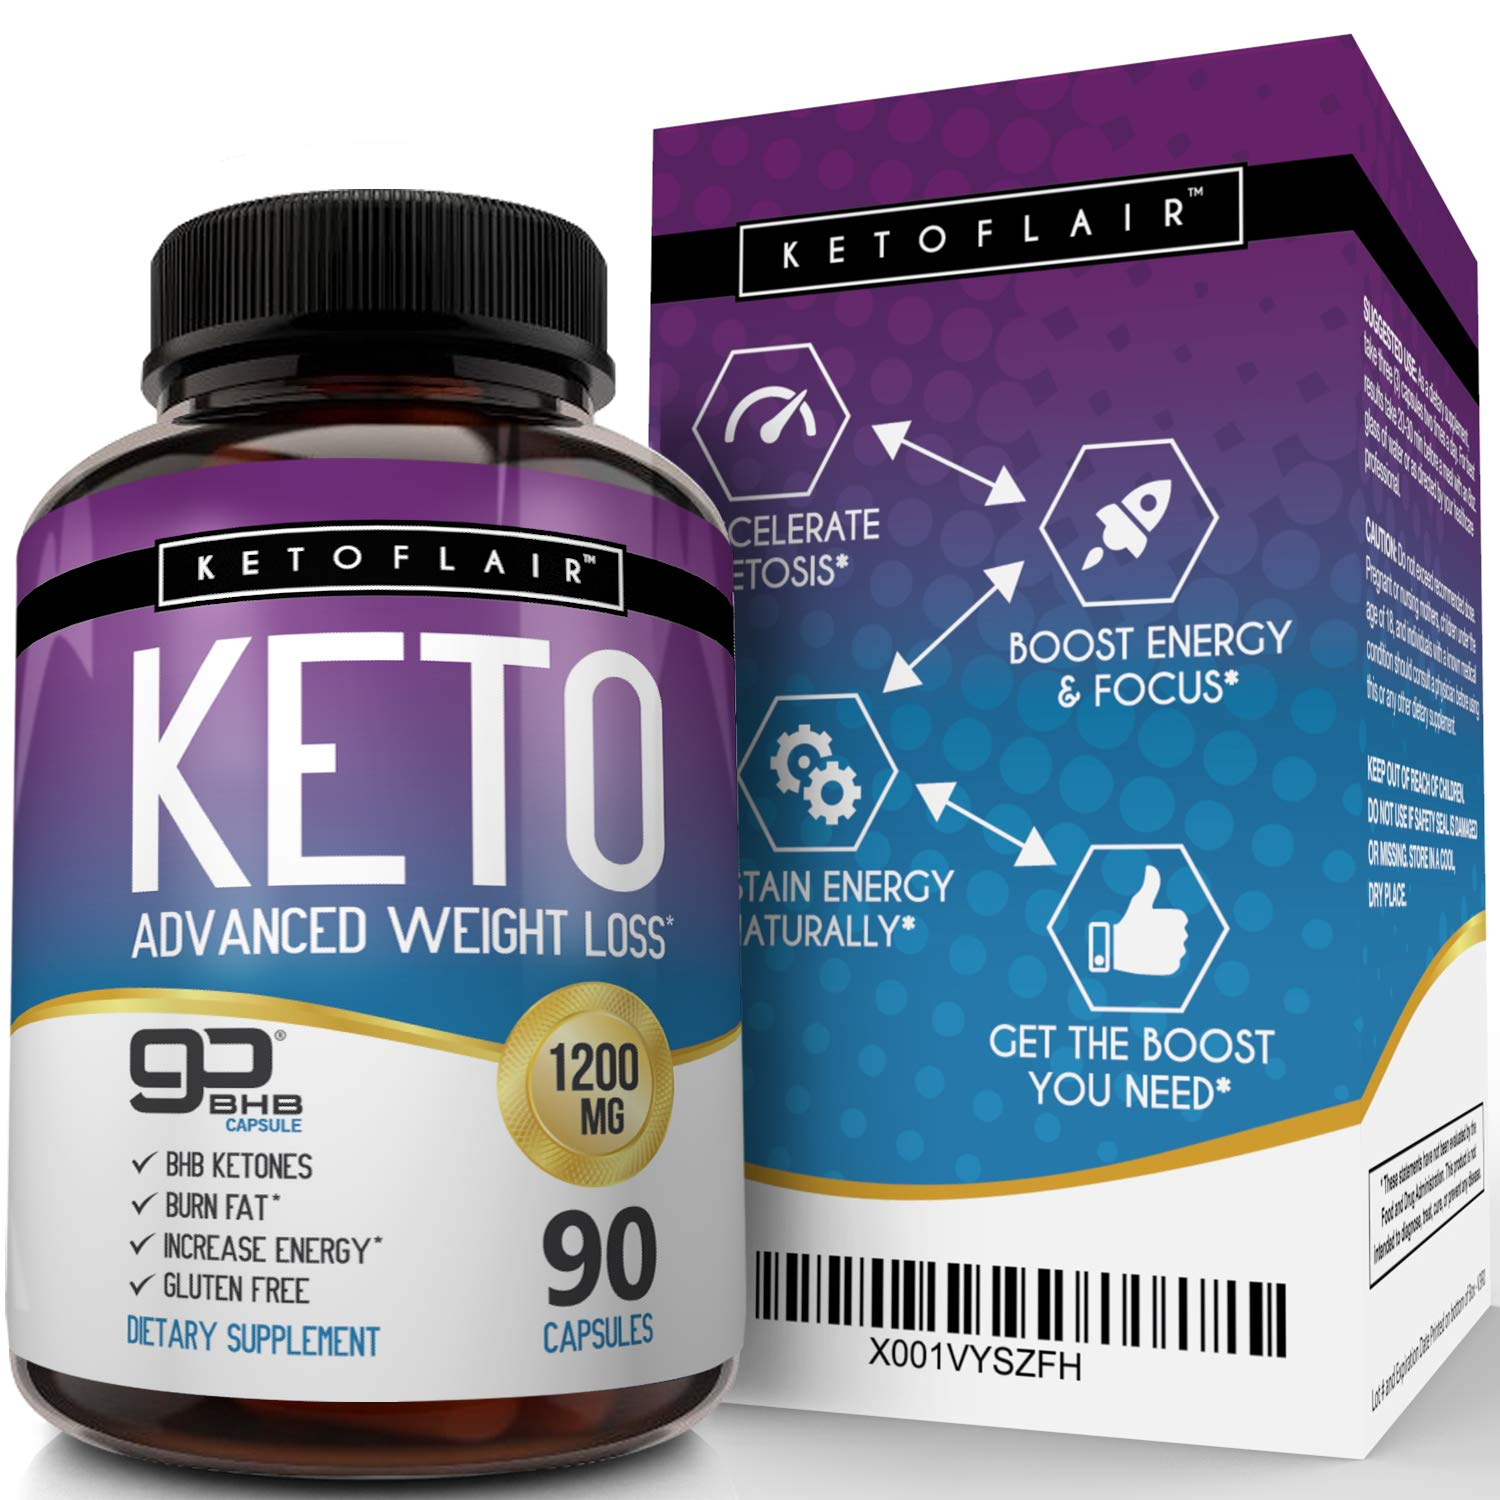 Best Keto Diet Pills GoBHB 1200mg, 90 Capsules Advanced Weight Loss Ketosis Supplement - Natural BHB Salts (beta hydroxybutyrate) Ketogenic Fat Burner, Carb Blocker, Non-GMO - Best Weight Loss Support by NutriFlair (Image #4)